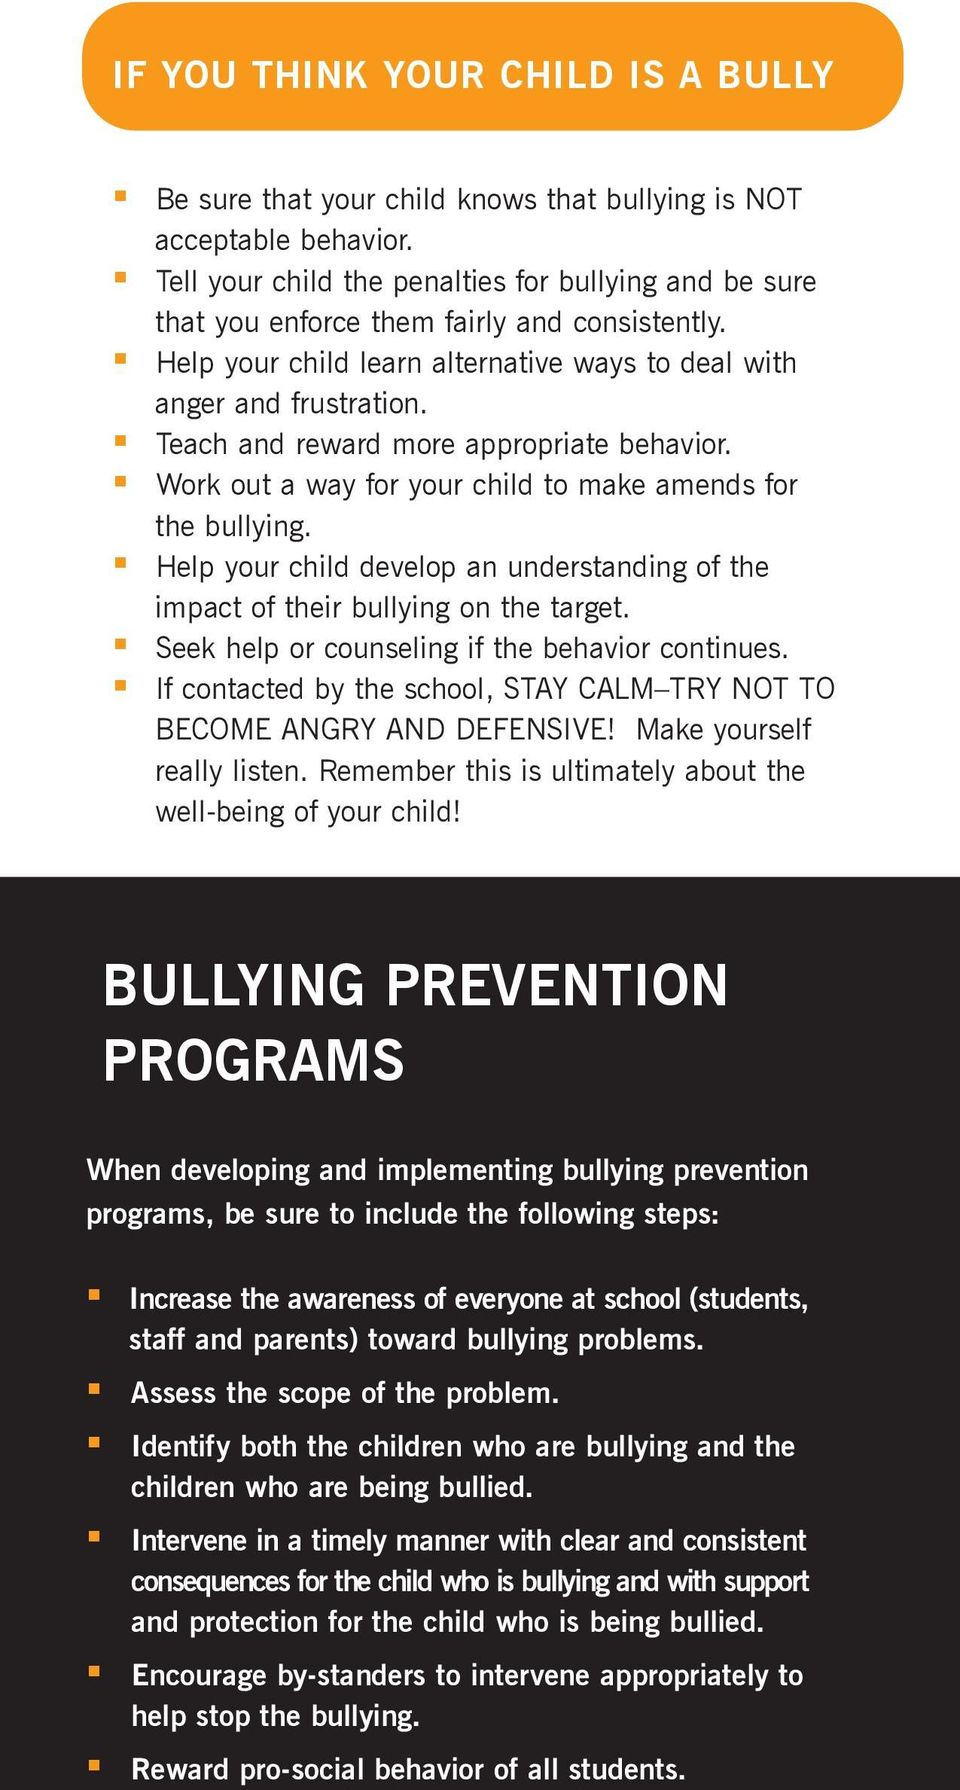 Teach and reward more appropriate behavior. Work out a way for your child to make amends for the bullying. Help your child develop an understanding of the impact of their bullying on the target.